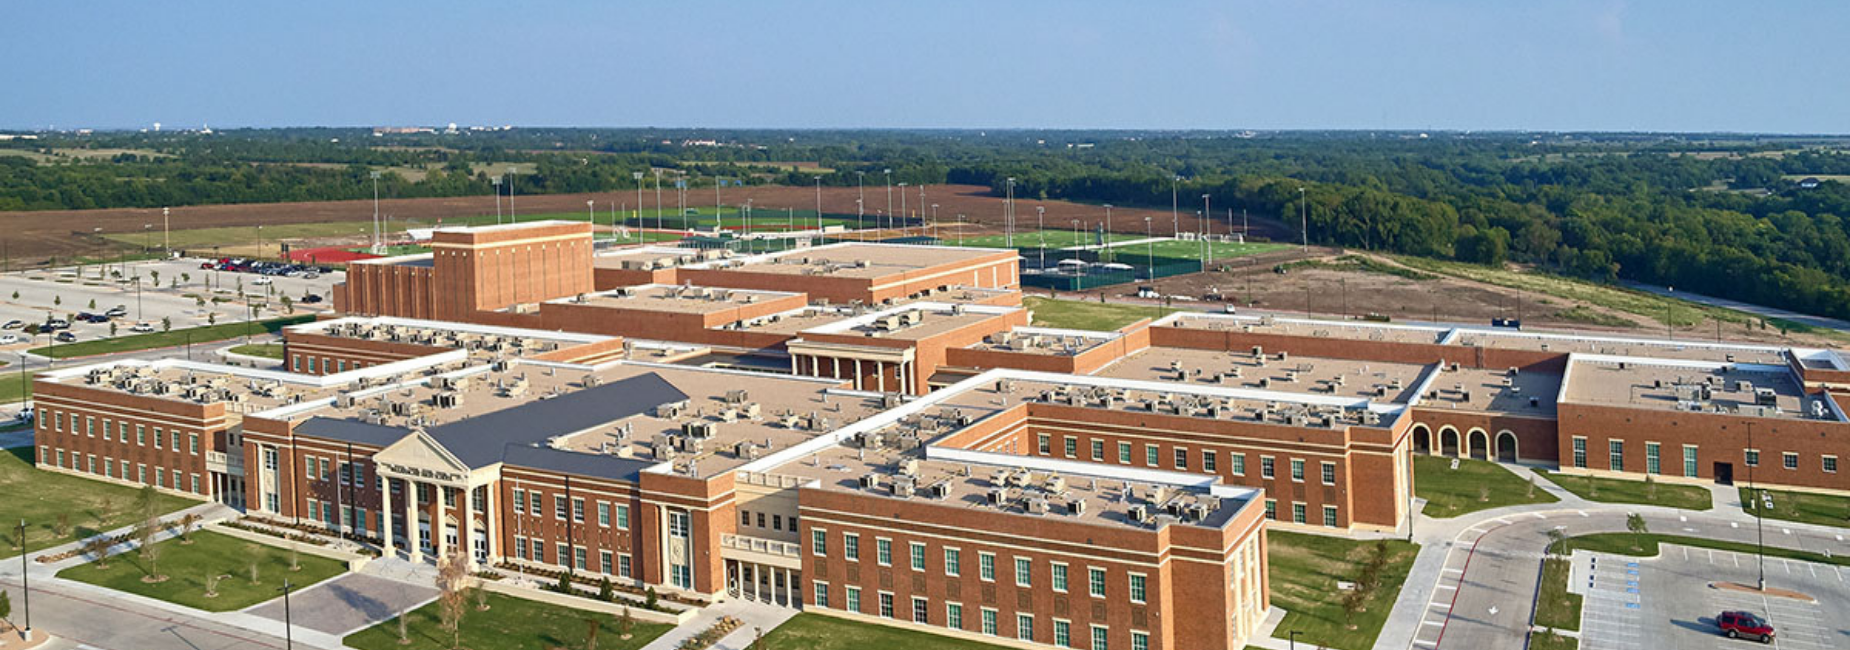 whs aerial view